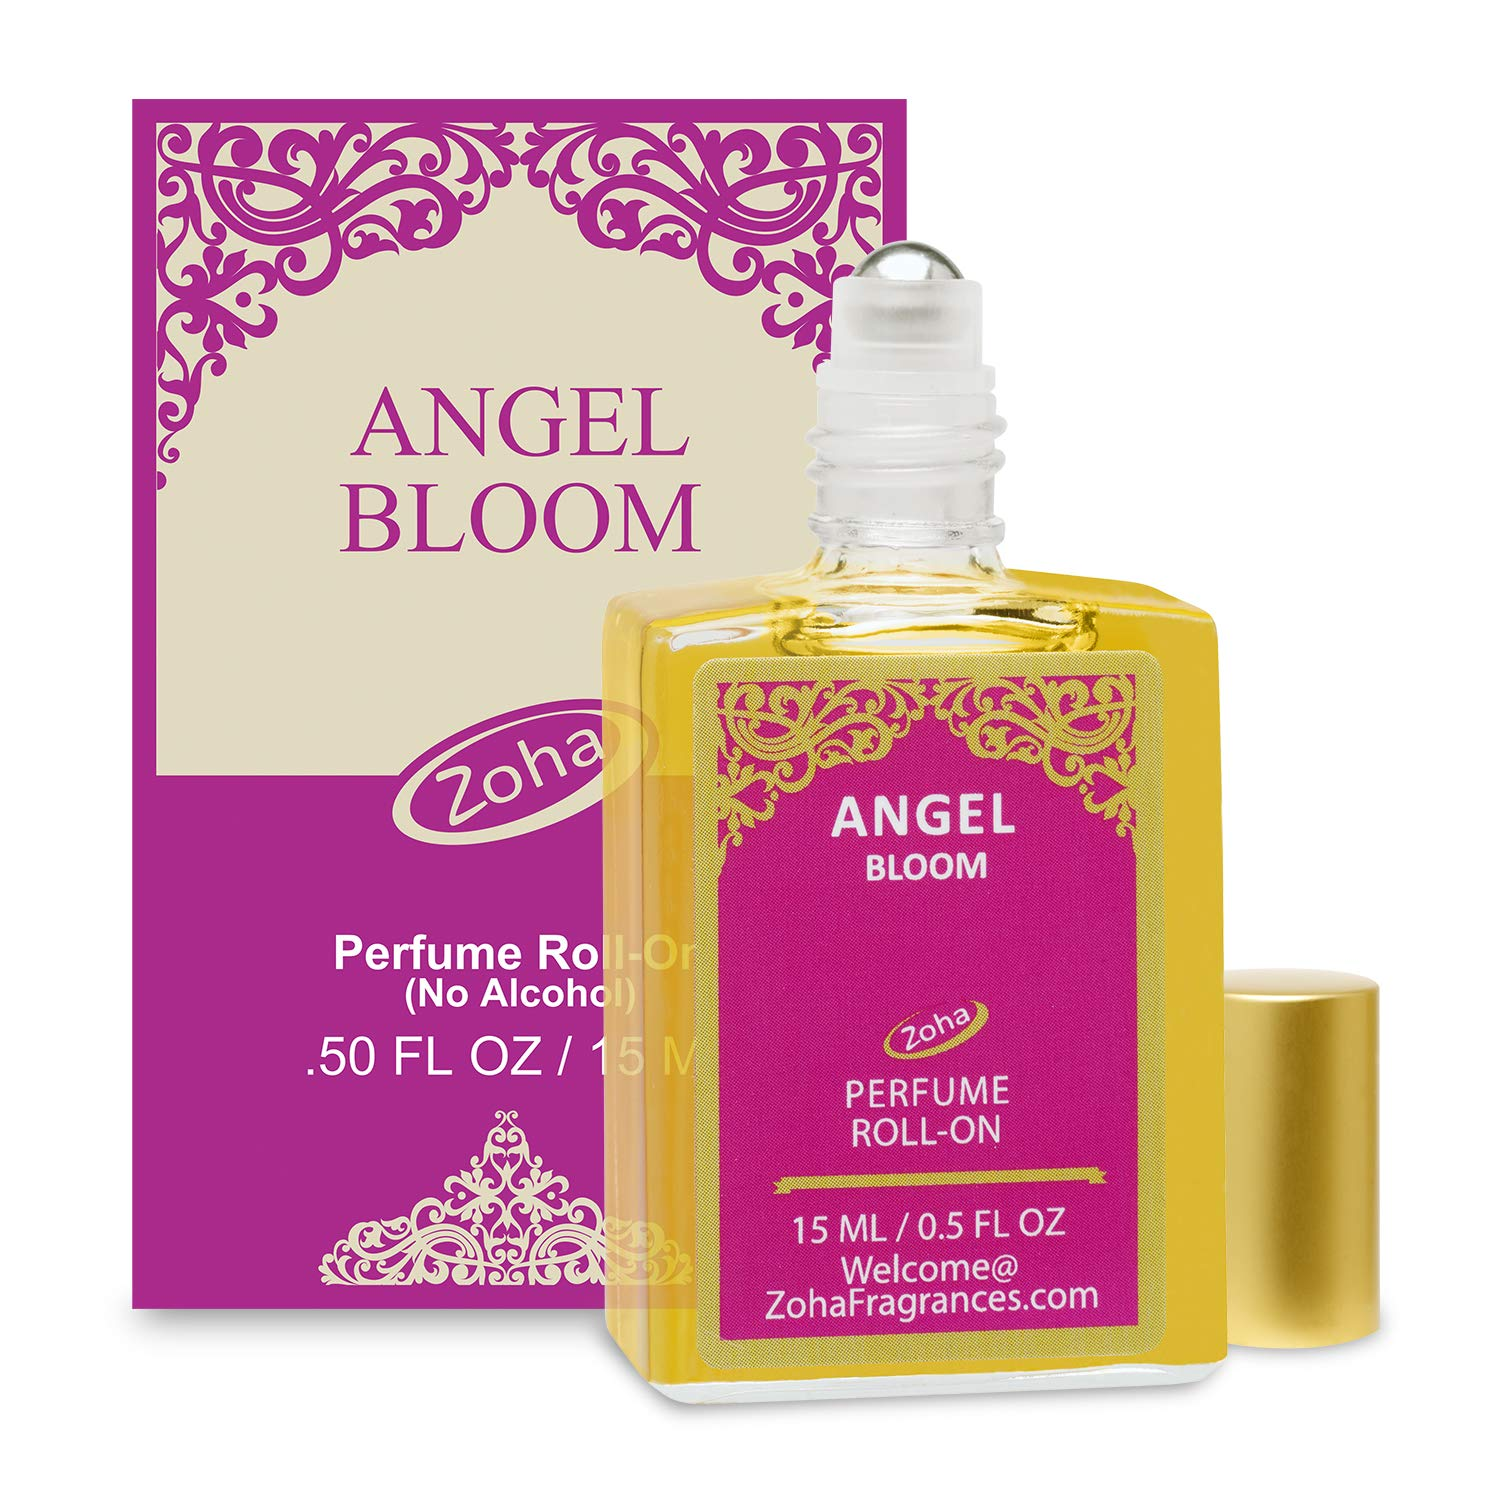 Angel Bloom Perfume Oil Roll-On (No Alcohol) - Essential Oils and Clean Beauty Hypoallergenic Vegan Perfumes for Women and Men by Zoha Fragrances, 15 ml / 0.50 fl Oz